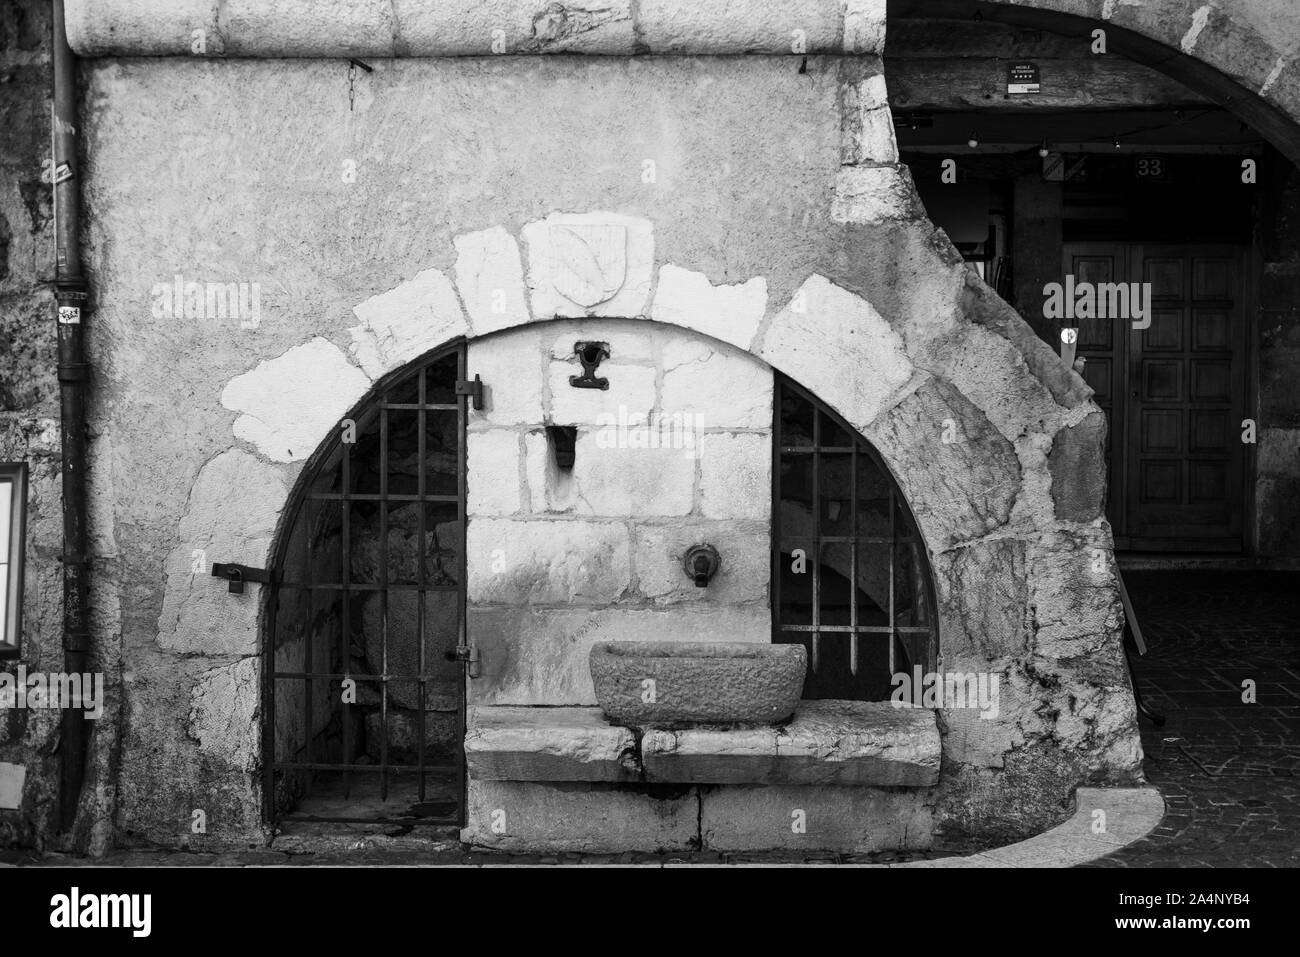 Black and white image of water well in Annecy, France Stock Photo